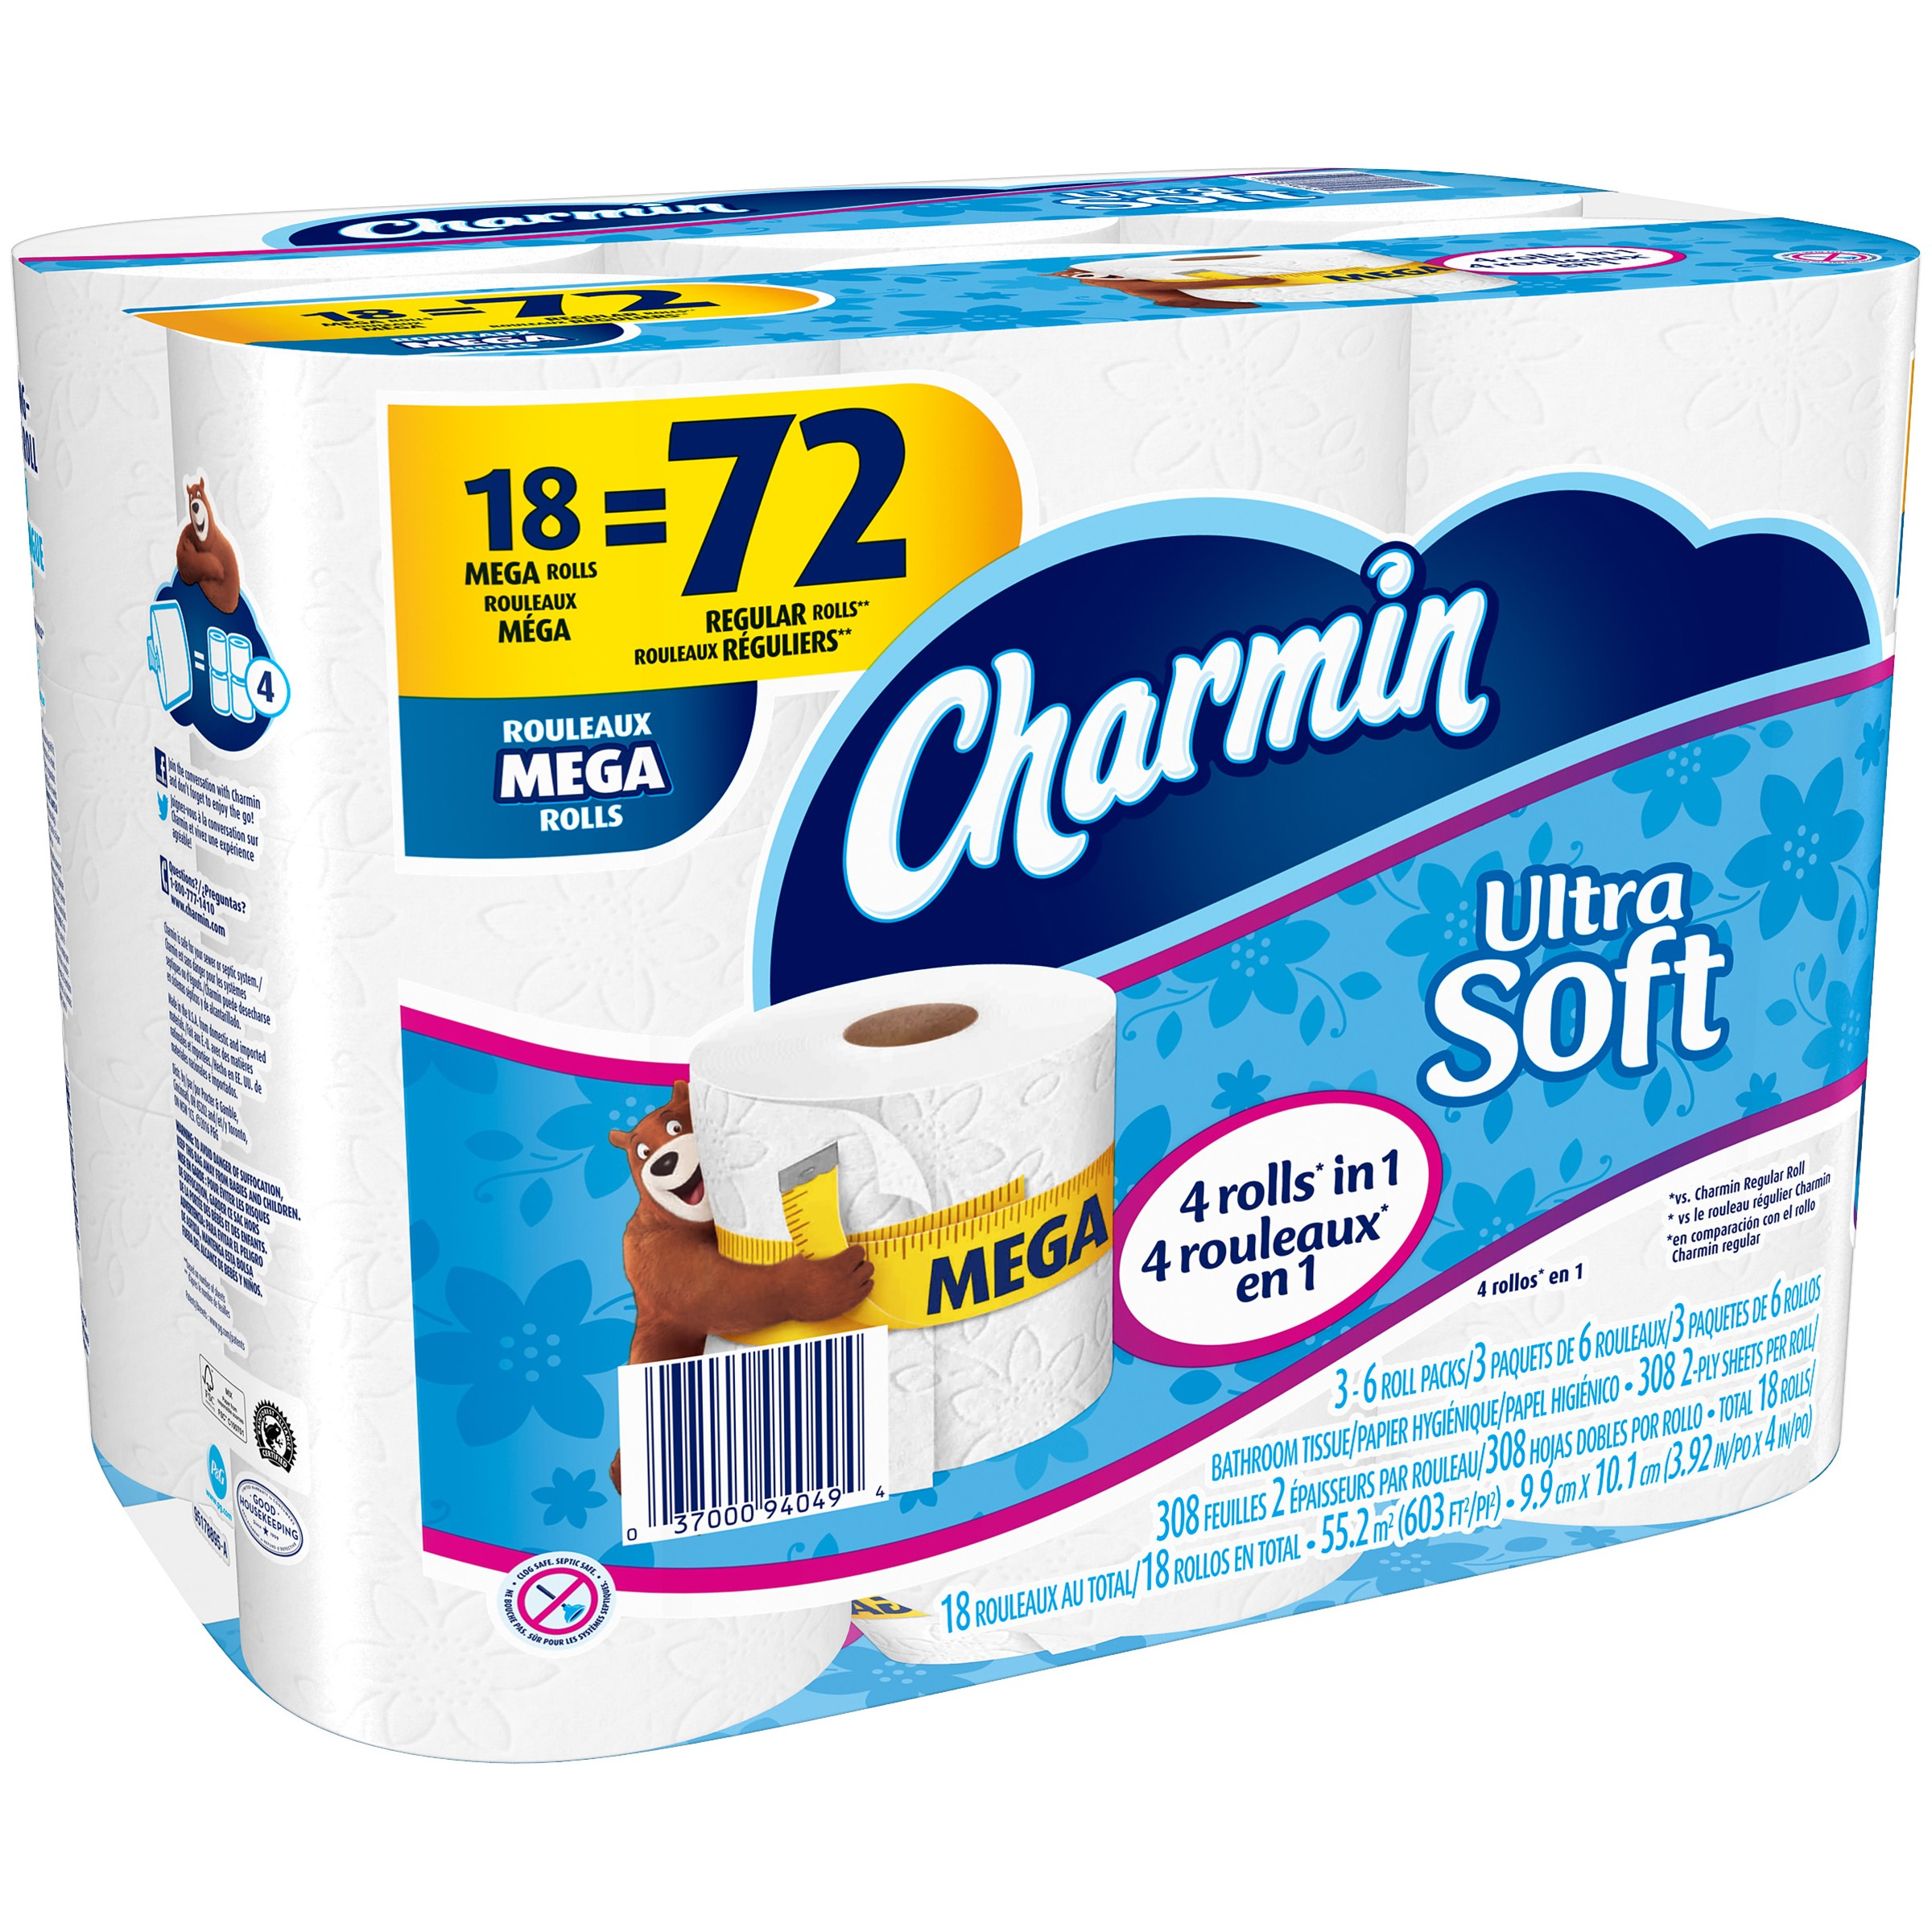 Charmin Ultra Soft 2-Ply Mega Toilet Paper Rolls 18 ct Pack by Procter & Gamble